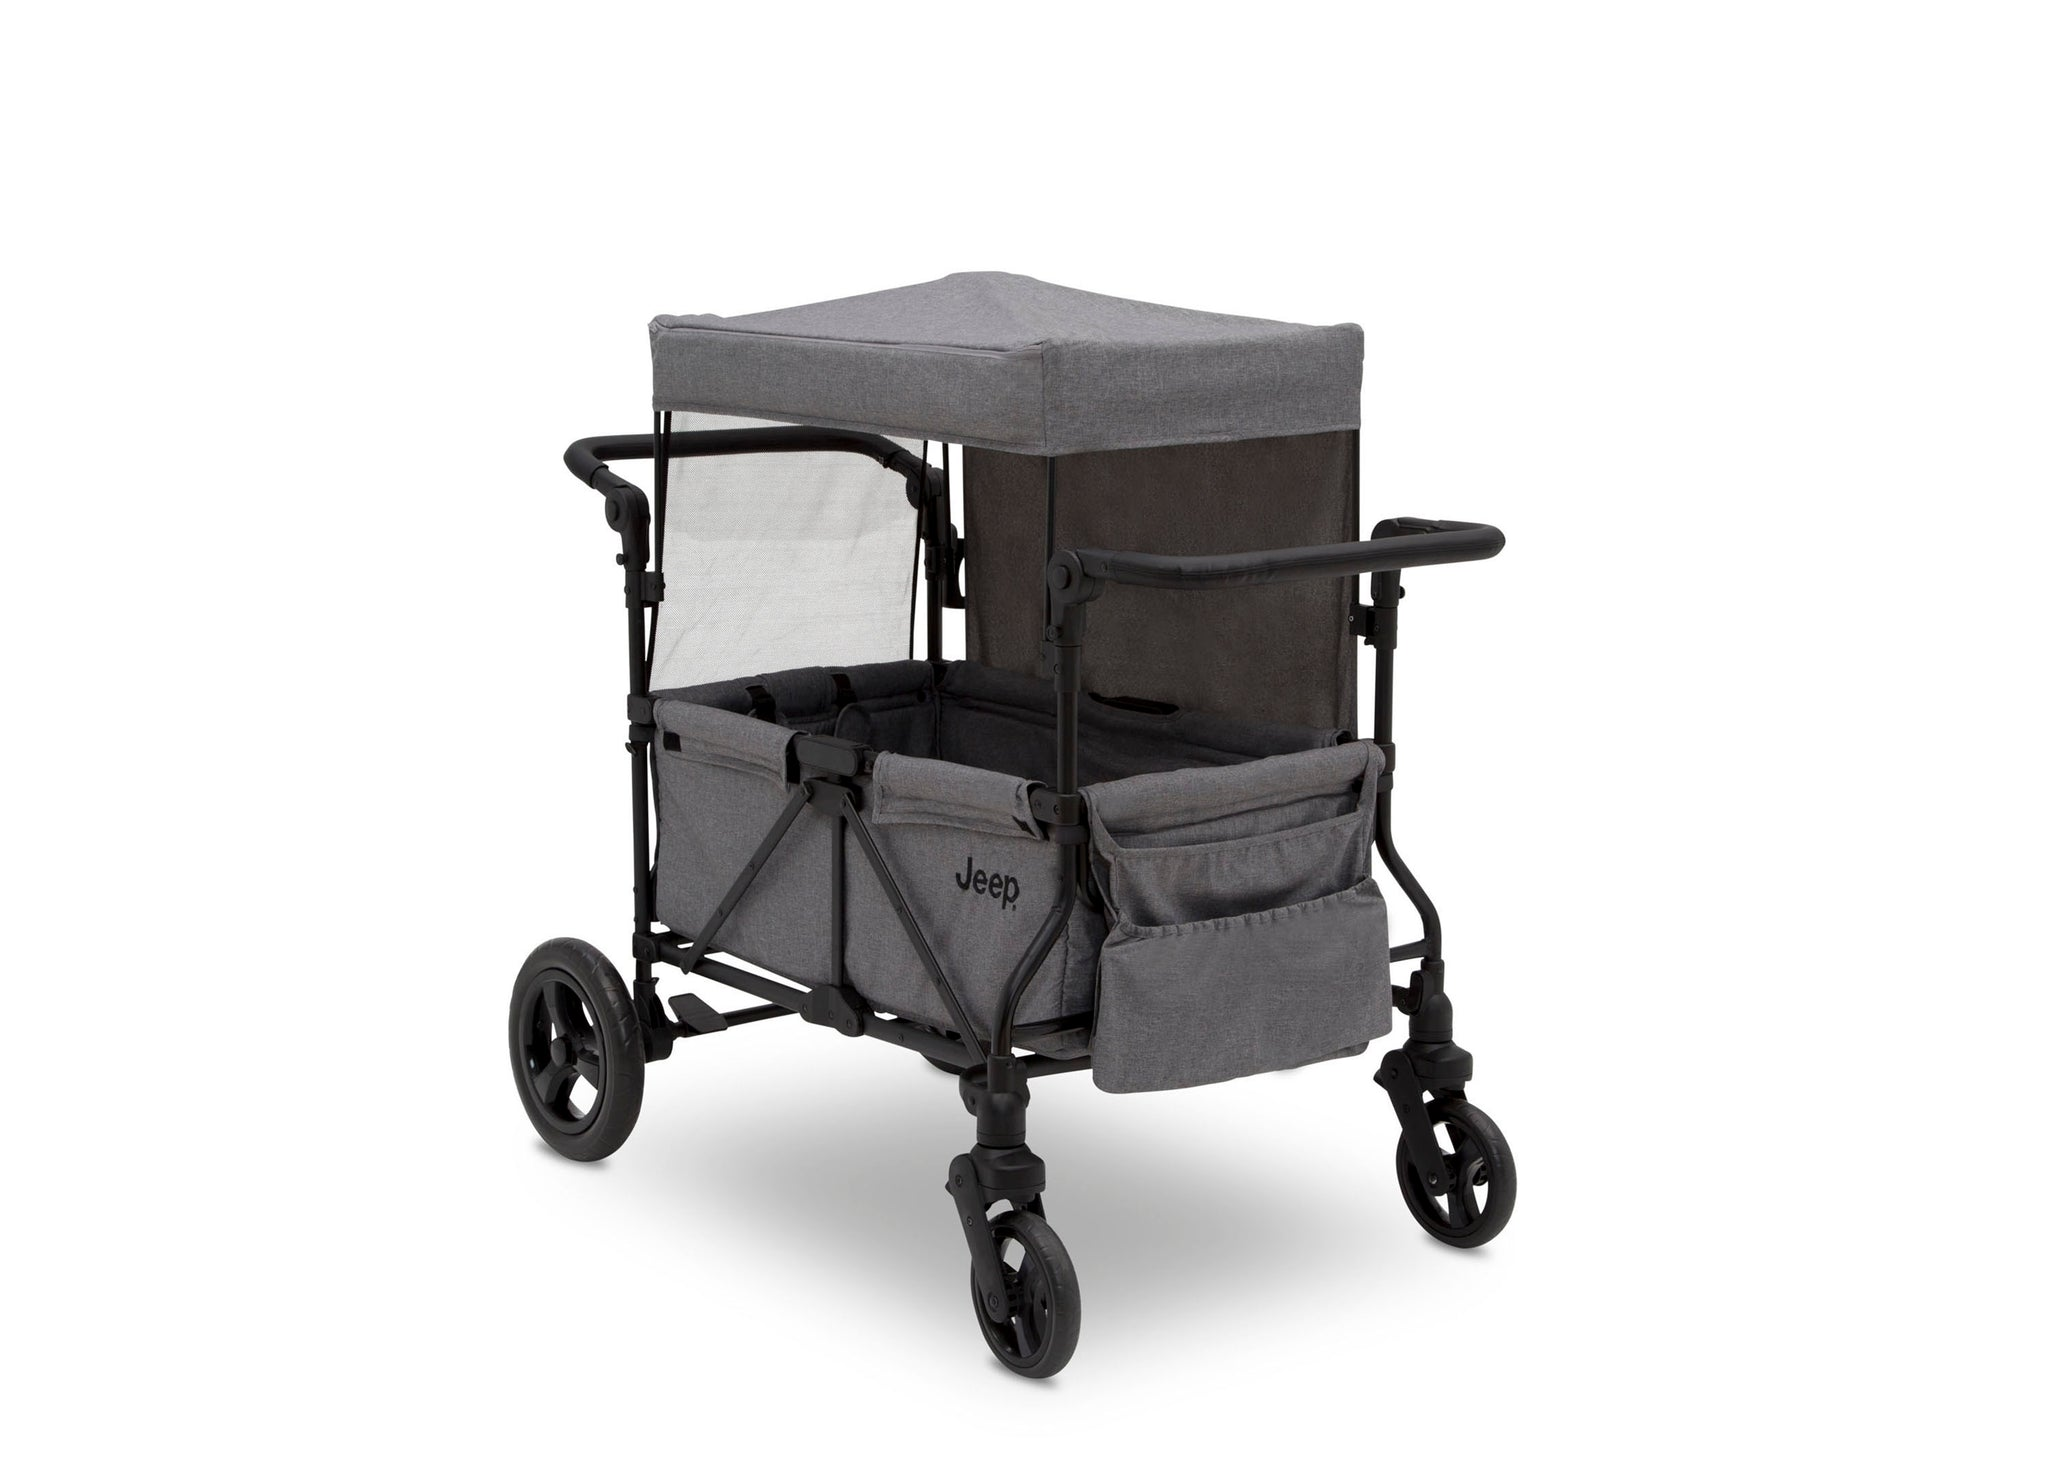 Jeep Wrangler Stroller Wagon by Delta Children, Grey (2148), Full View